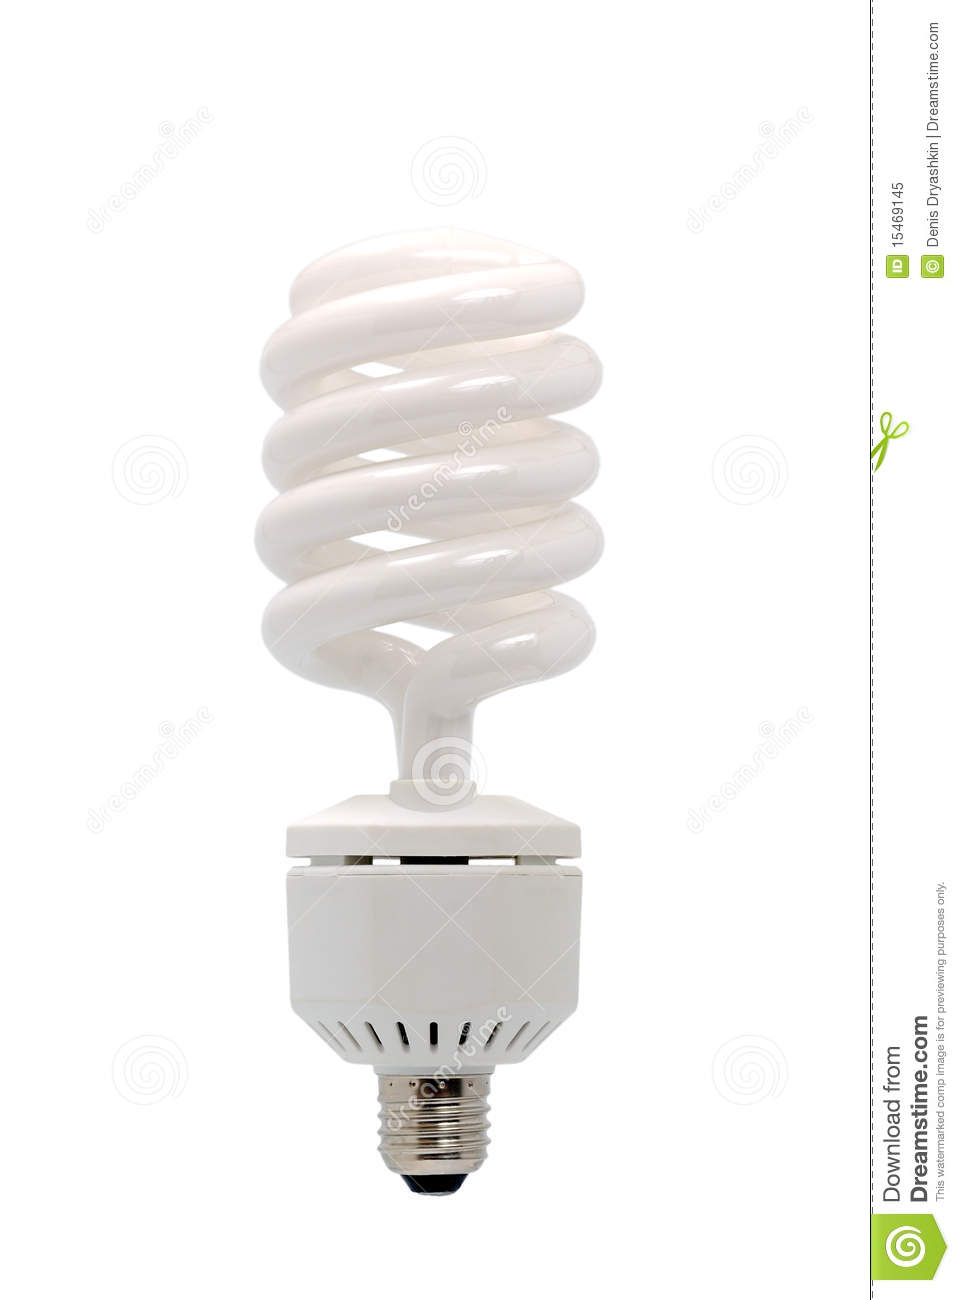 energy saving fluorescent light bulb royalty free stock photo image. Black Bedroom Furniture Sets. Home Design Ideas